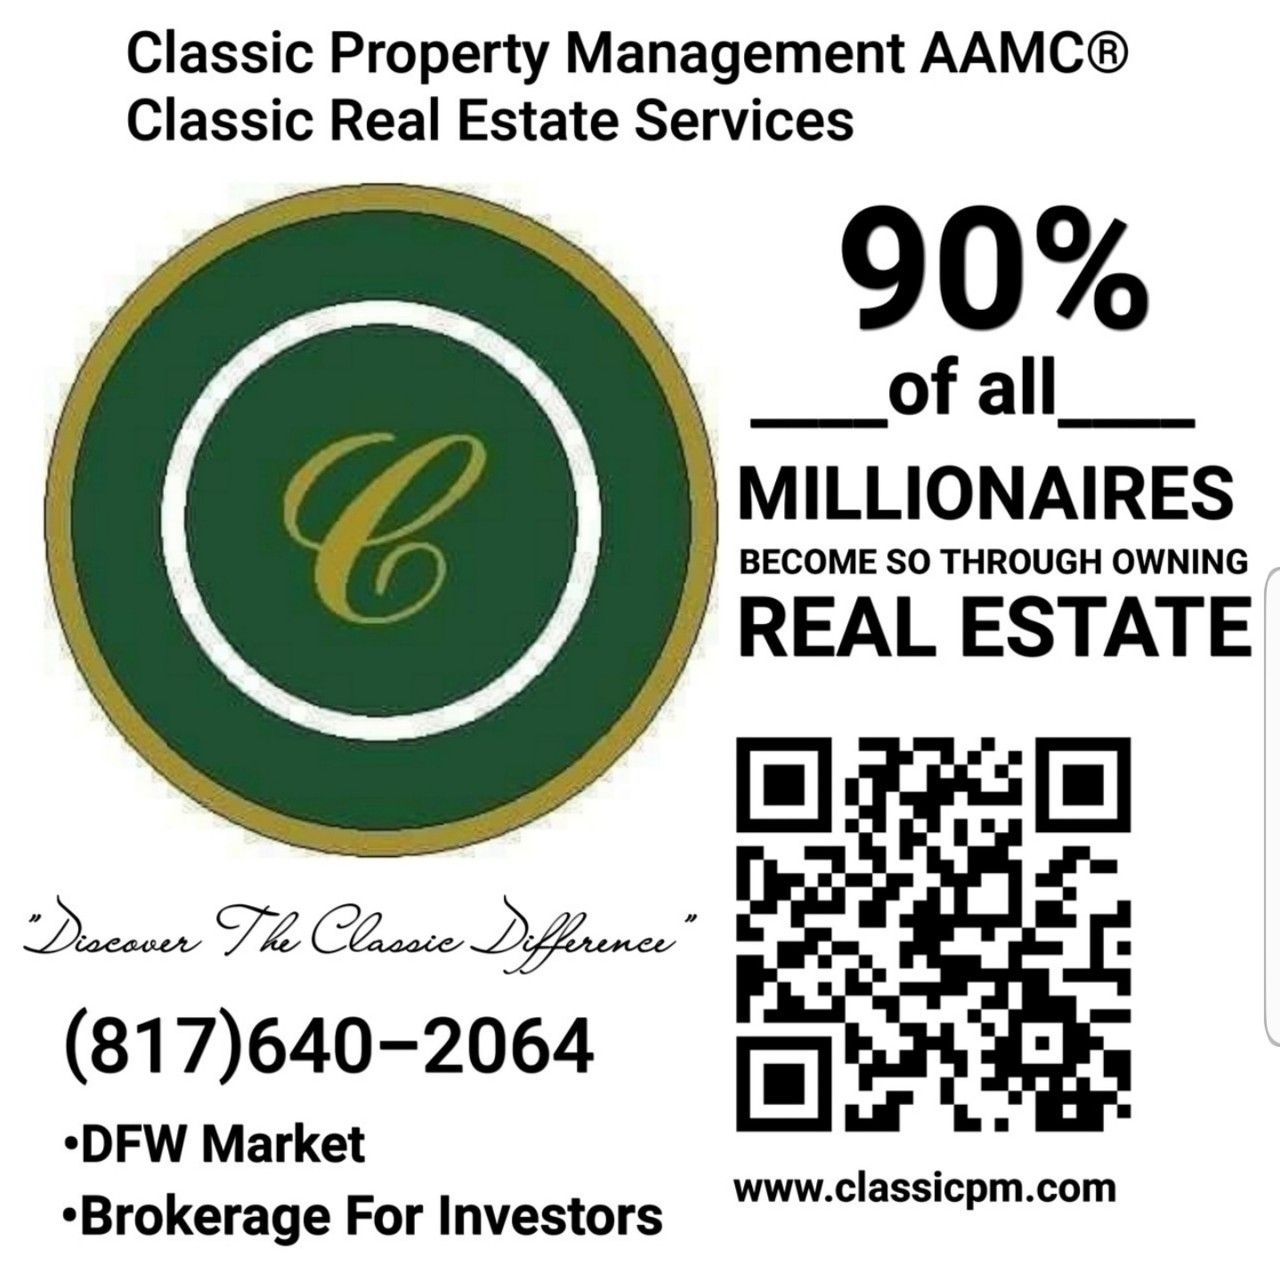 Classic Property Management Aamc Offers The Most Comprehensive Full Service Property Management Avai With Images Property Management Dfw Real Estate Real Estate Services